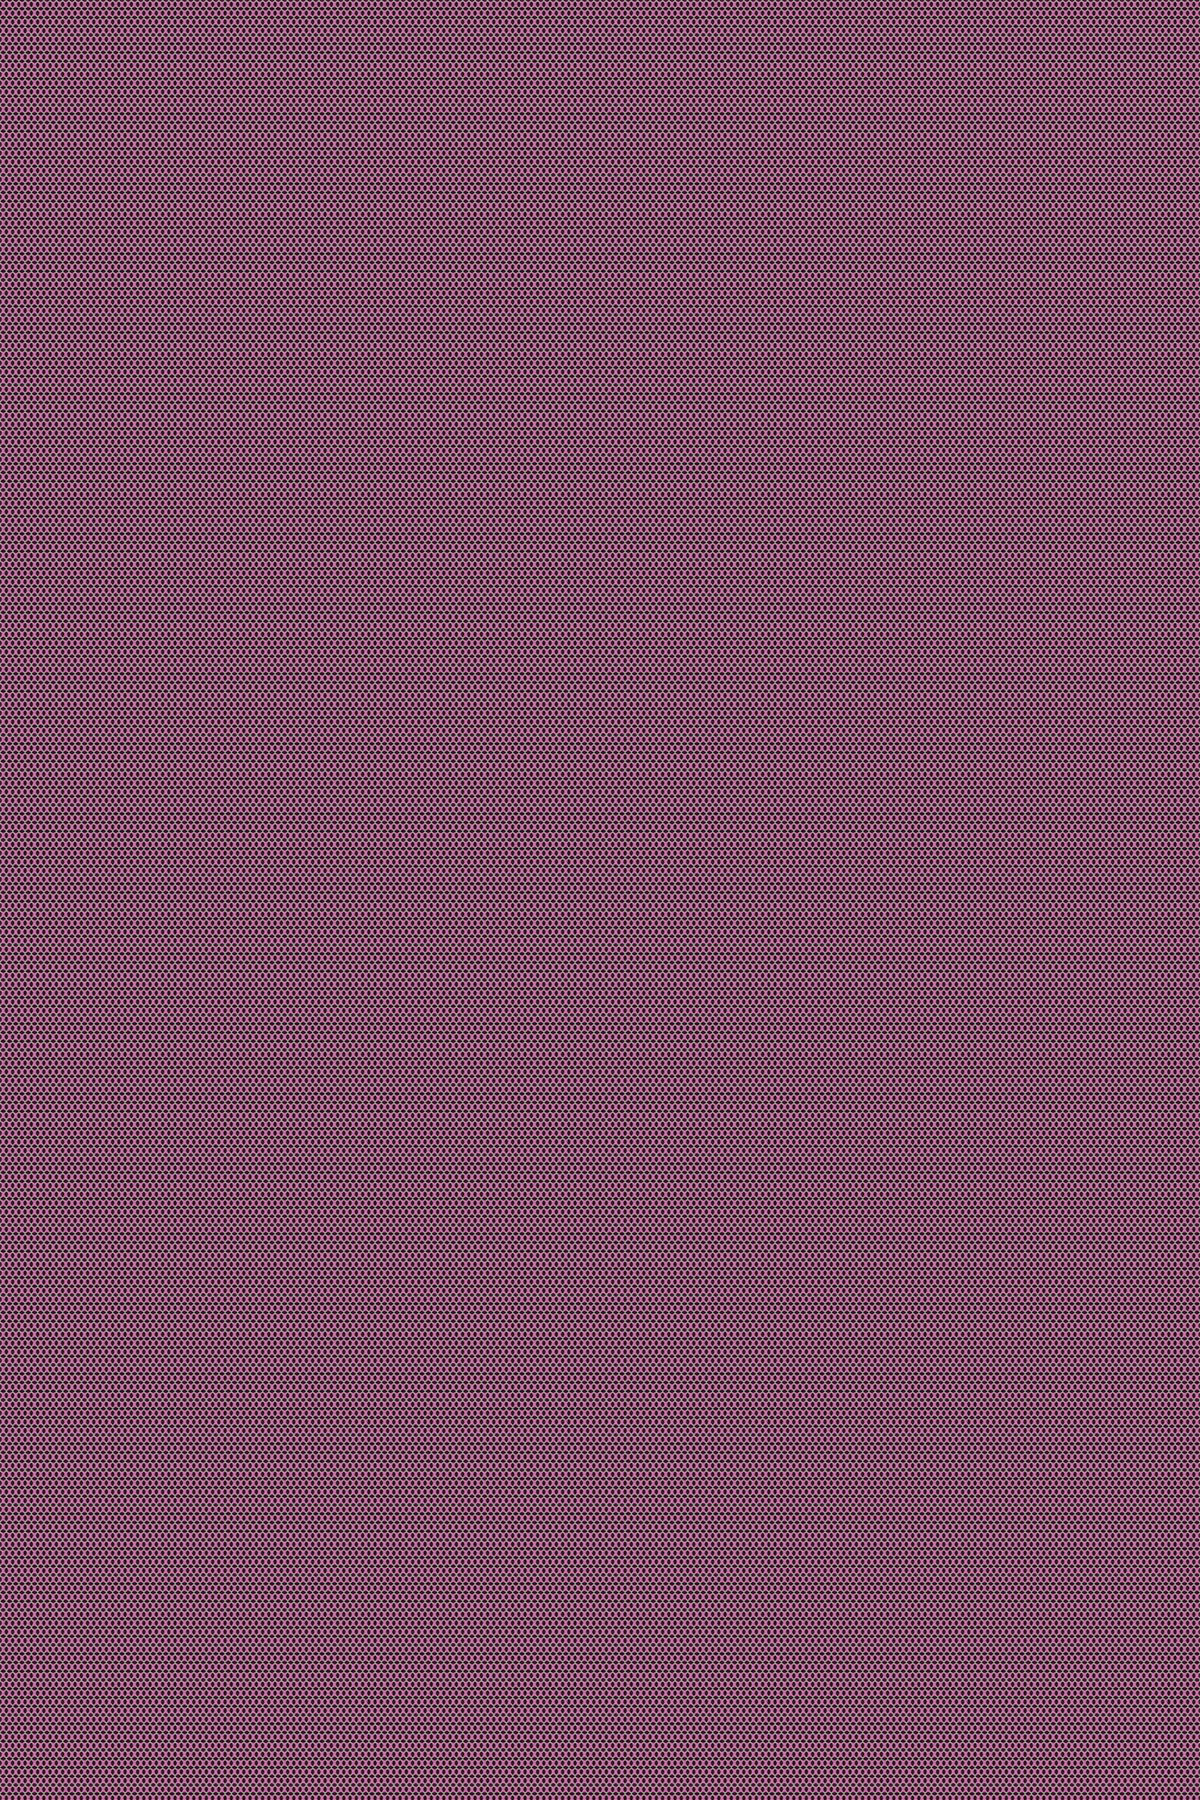 Image of iliv Fabric Modus Mulberry, MODUS MULBERRY